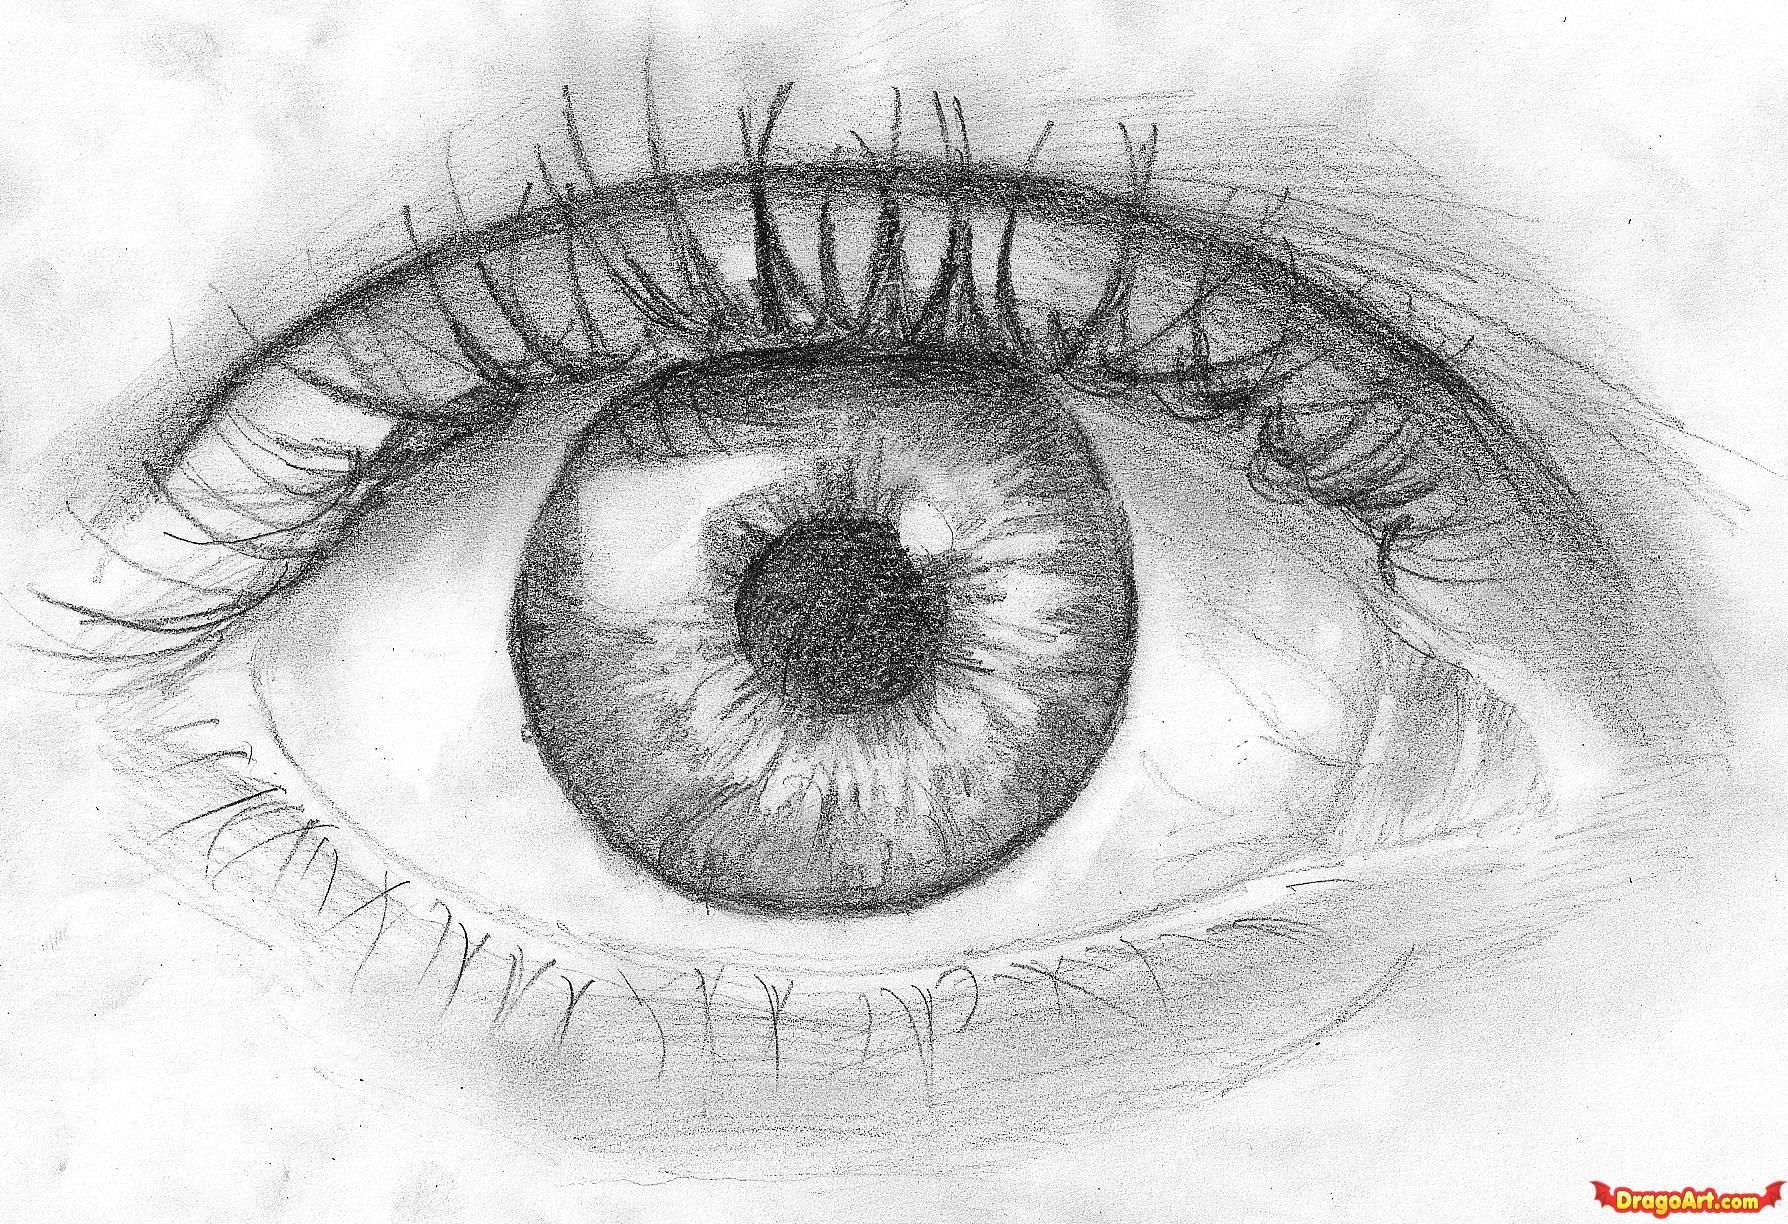 Real sketched drawings how to draw an eye in pencil step by step eyes people free online